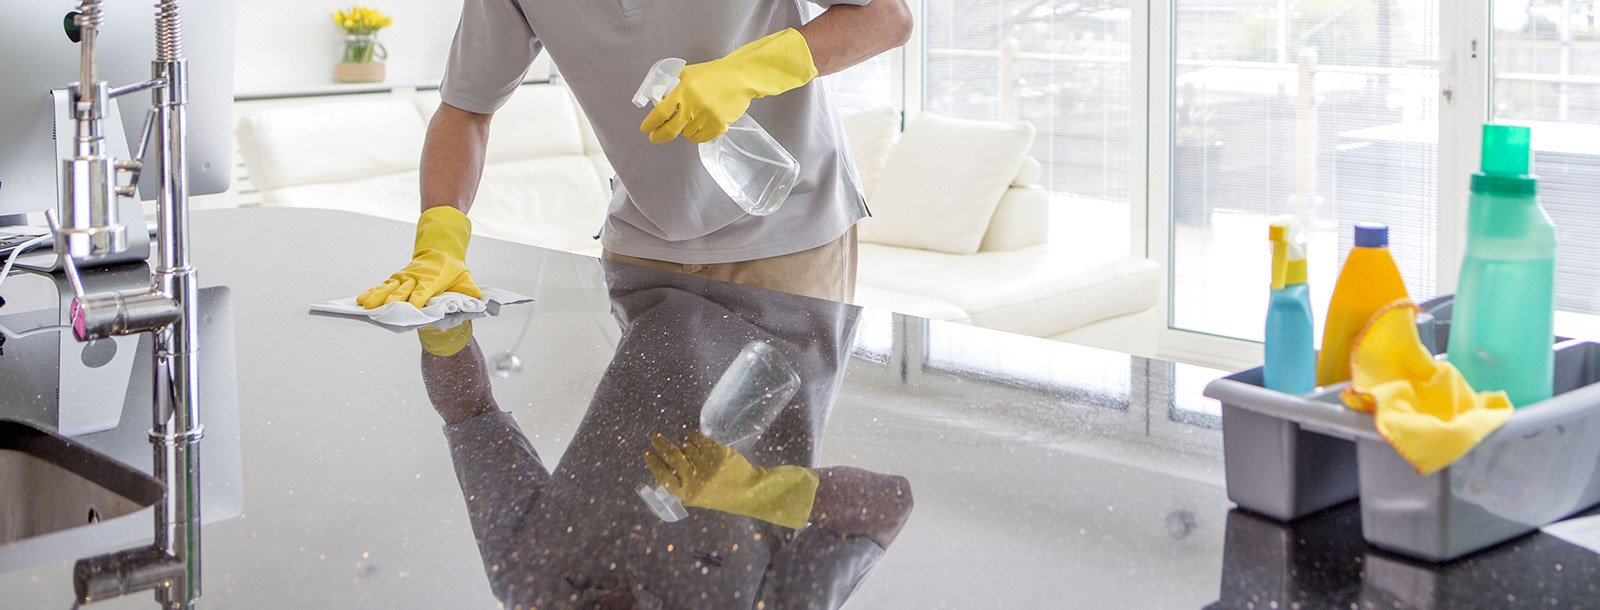 C & G Cleaning Service   Professional Cleaner   Glen Cove NY